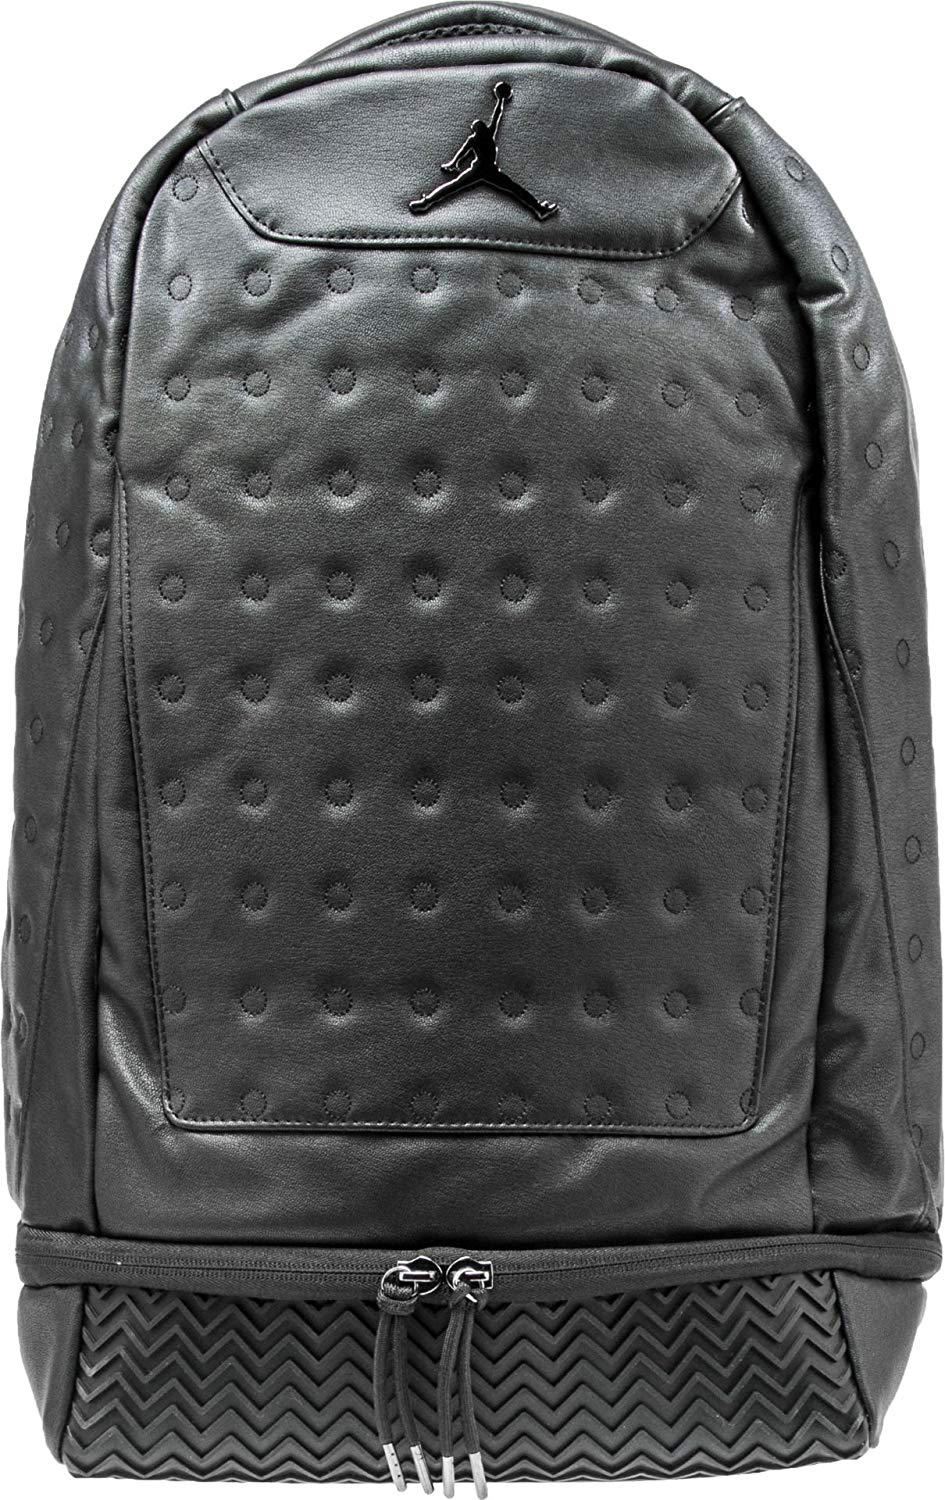 46e3265f8f Get Quotations · Jordan Retro 13 Backpack